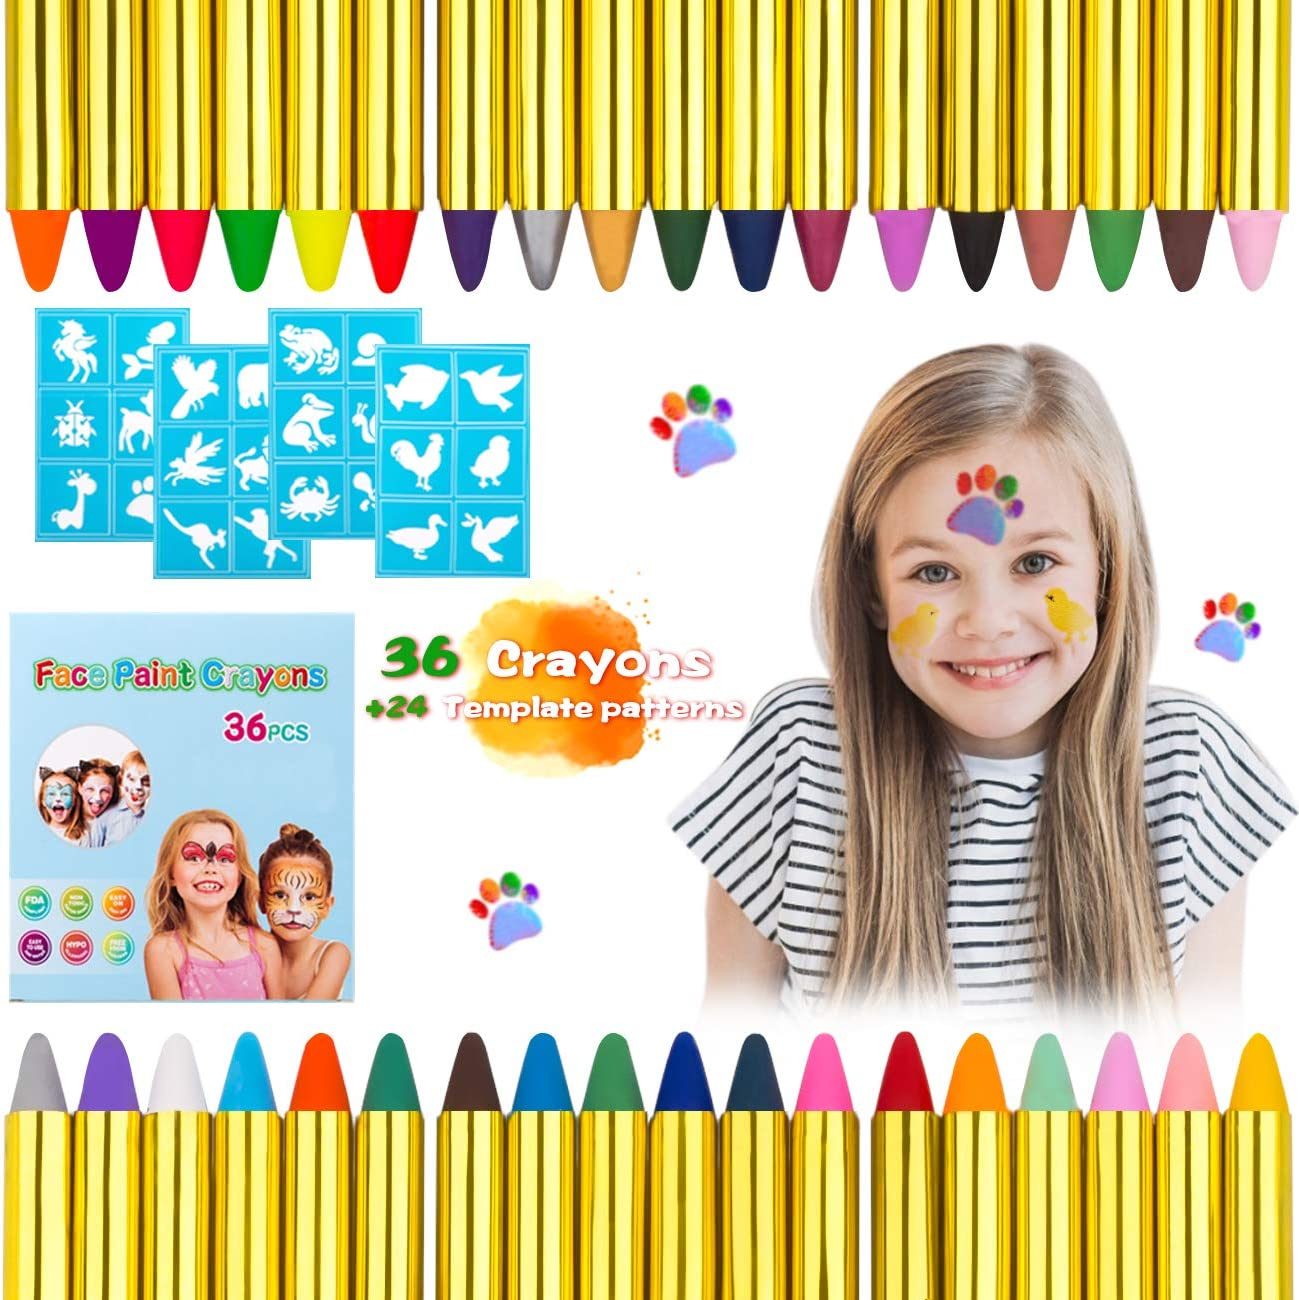 Kesote 36 Colors Face Paint Crayons Non-toxic Safety Body Painting Crayon Kit 4 Pcs Painting Stencils for Kids Easter//Halloween//Christmas//Makeup Cosplay Party